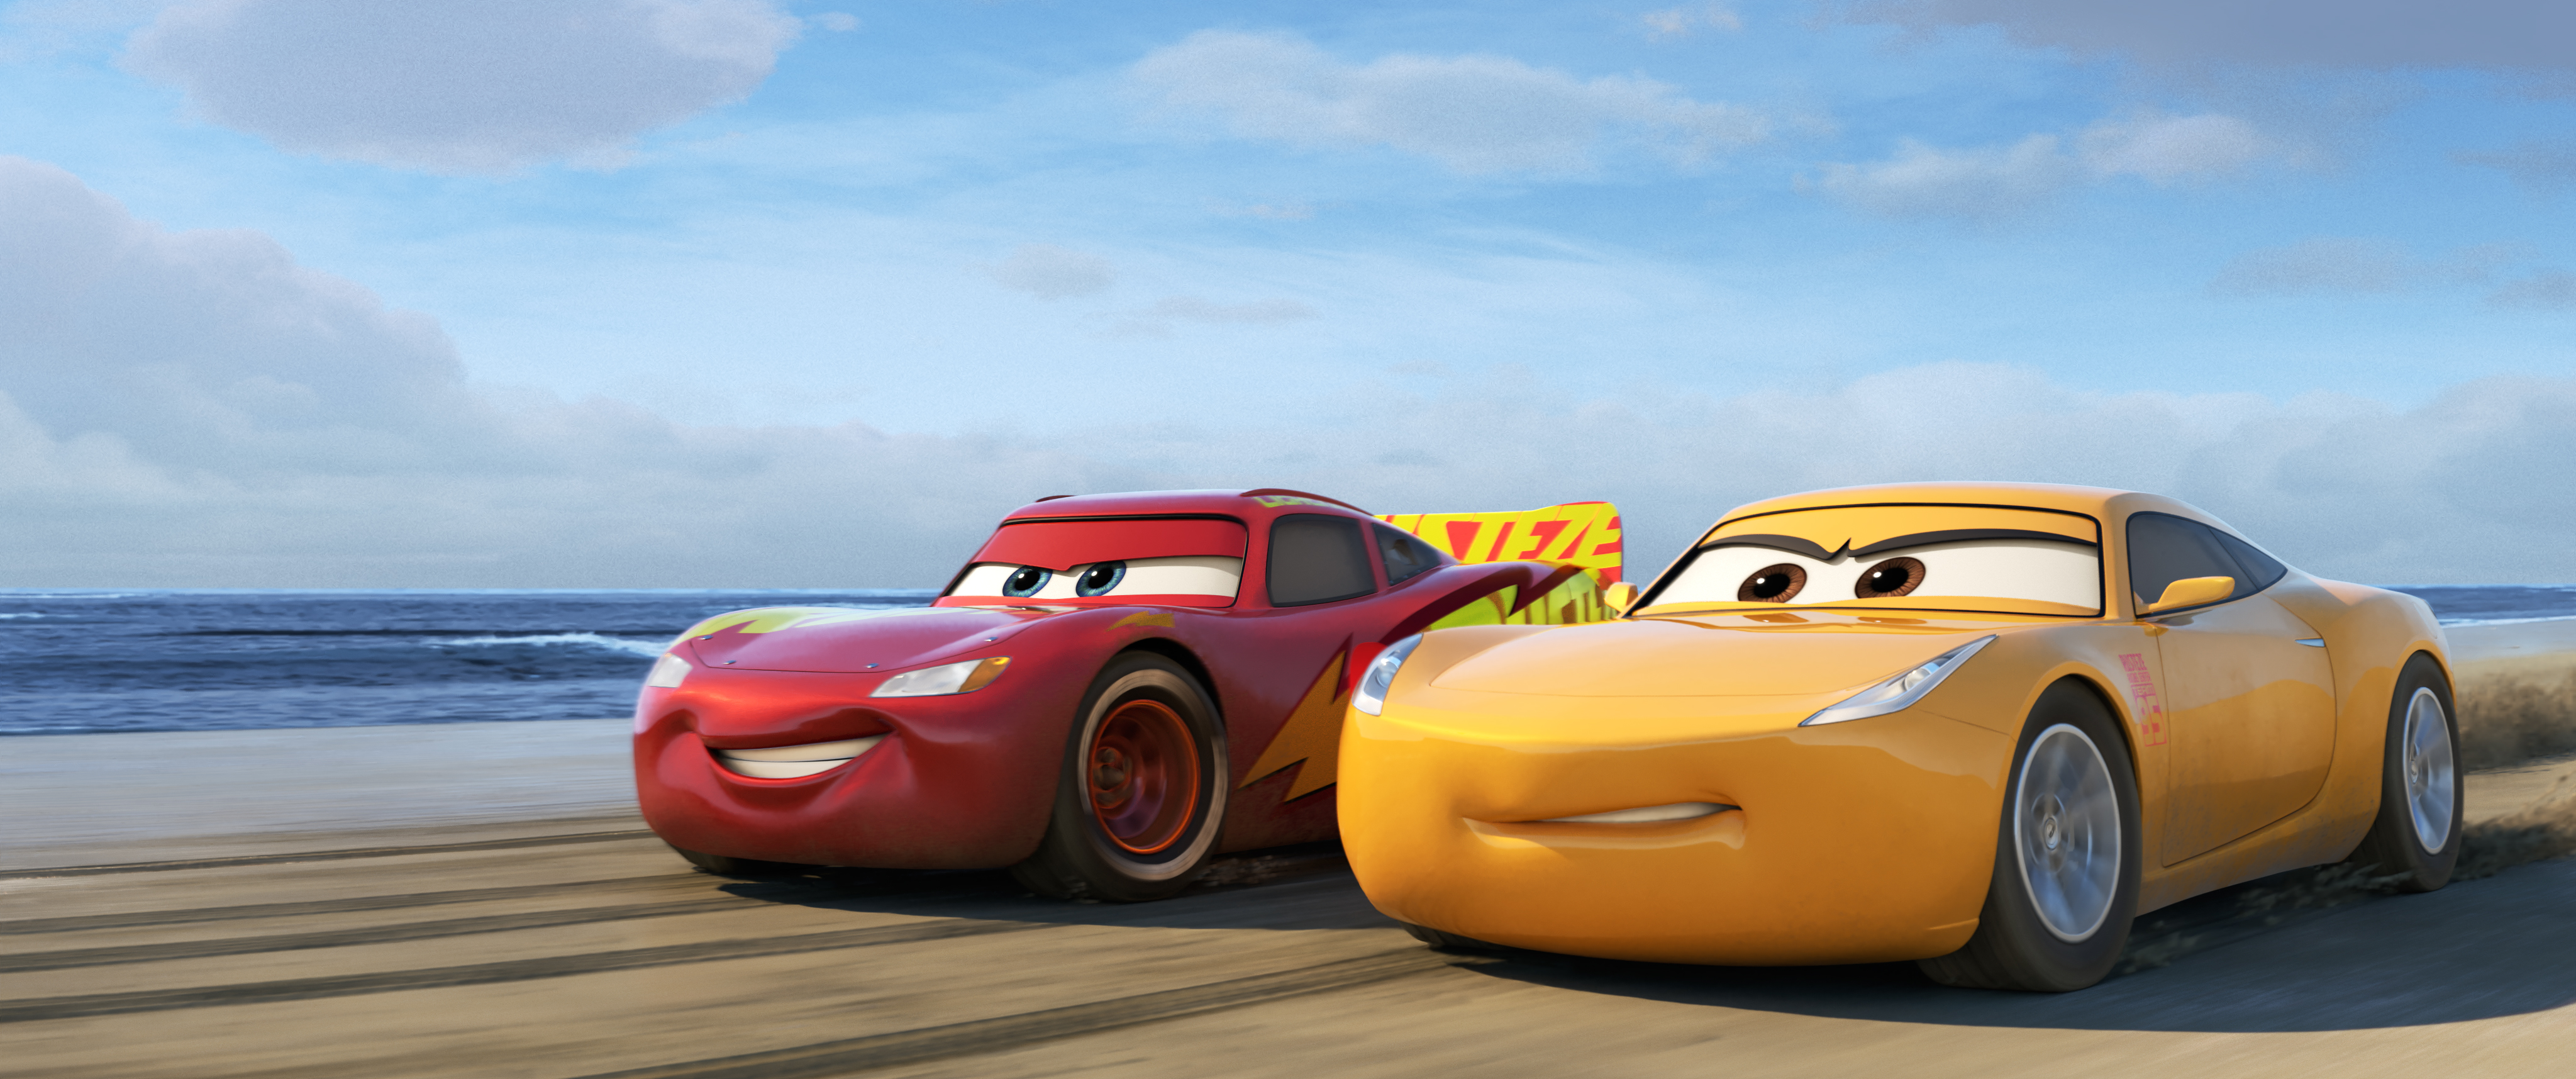 Cars 3 McQueen and Ramirez